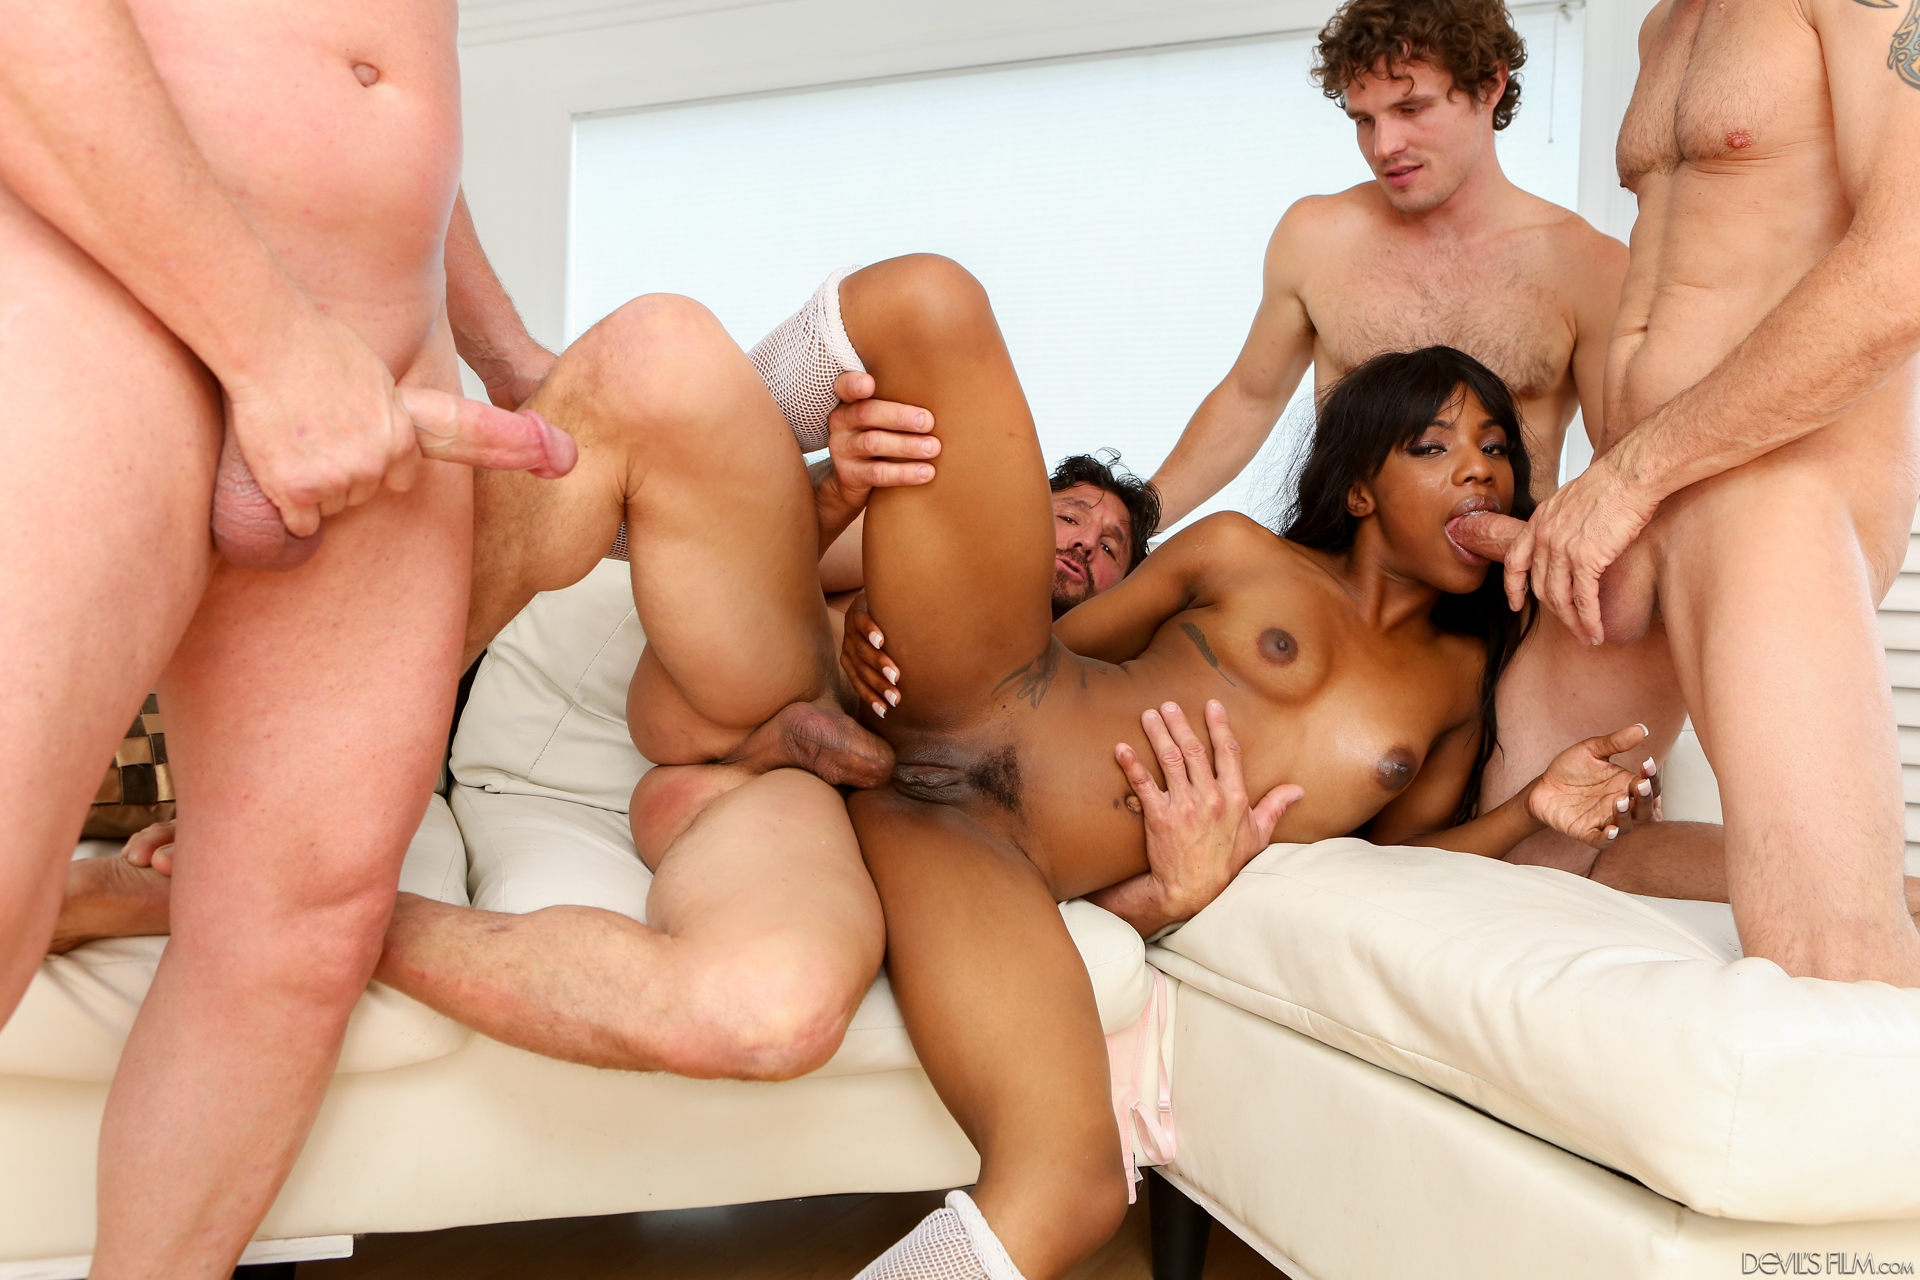 Black Girl White Guy  Most Sexy Porn  Free Hd  4K Photos-9291